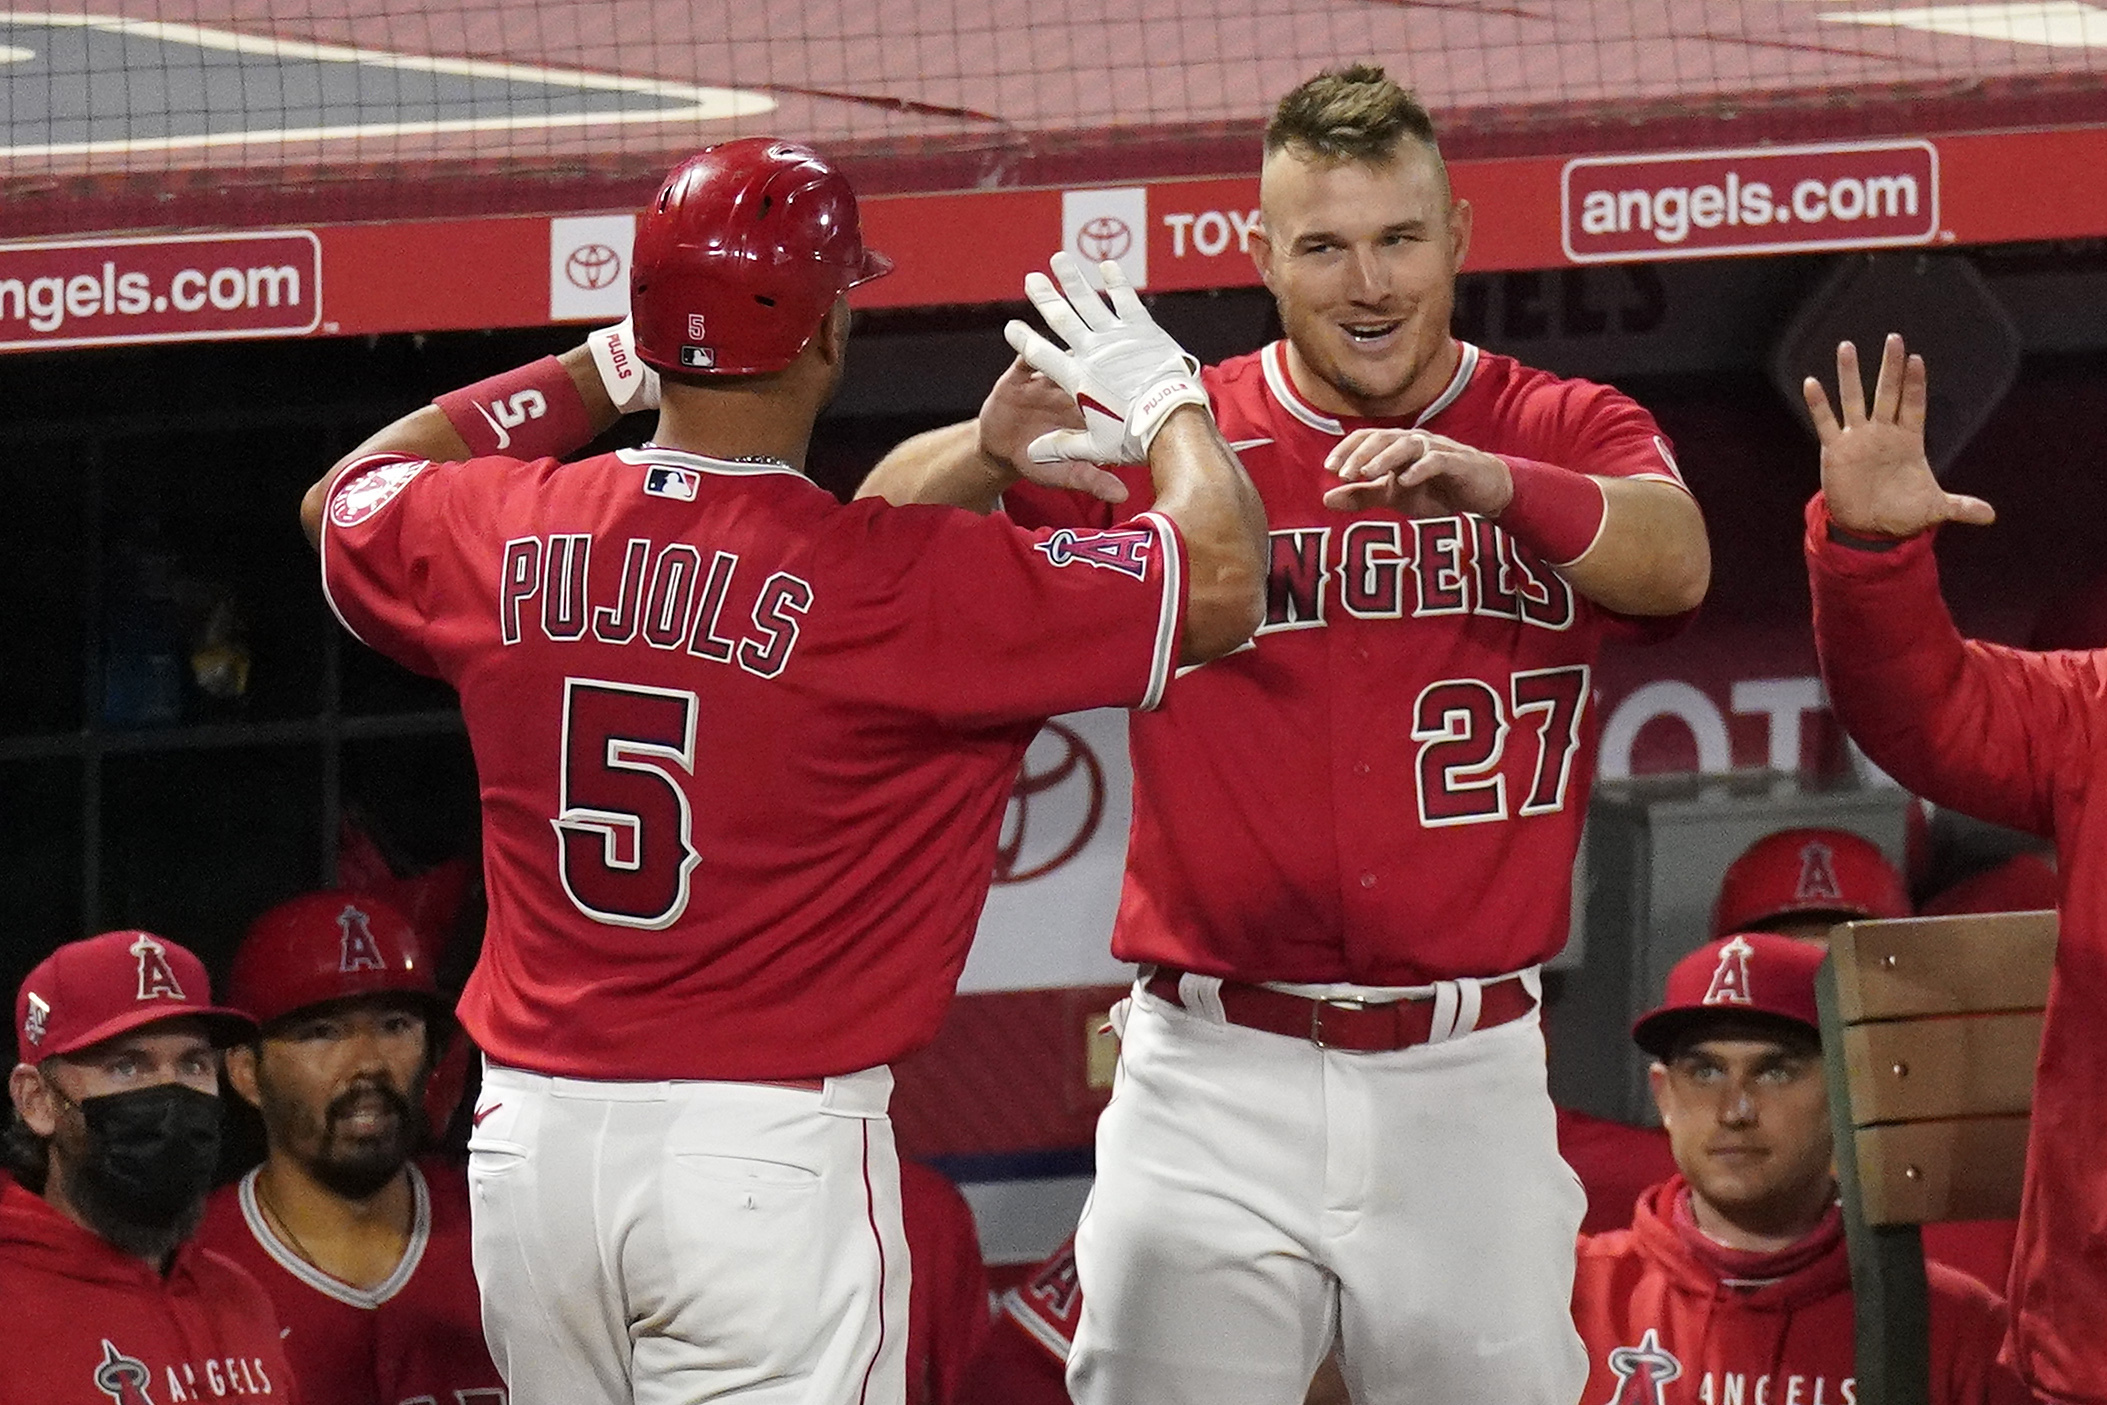 Los Angeles Angels' Albert Pujols, left, is congratulated by Mike Trout after hitting a solo home run during the seventh inning of a baseball game against the Texas Rangers in Anaheim on April 20, 2021. (Mark J. Terrill / Associated Press)